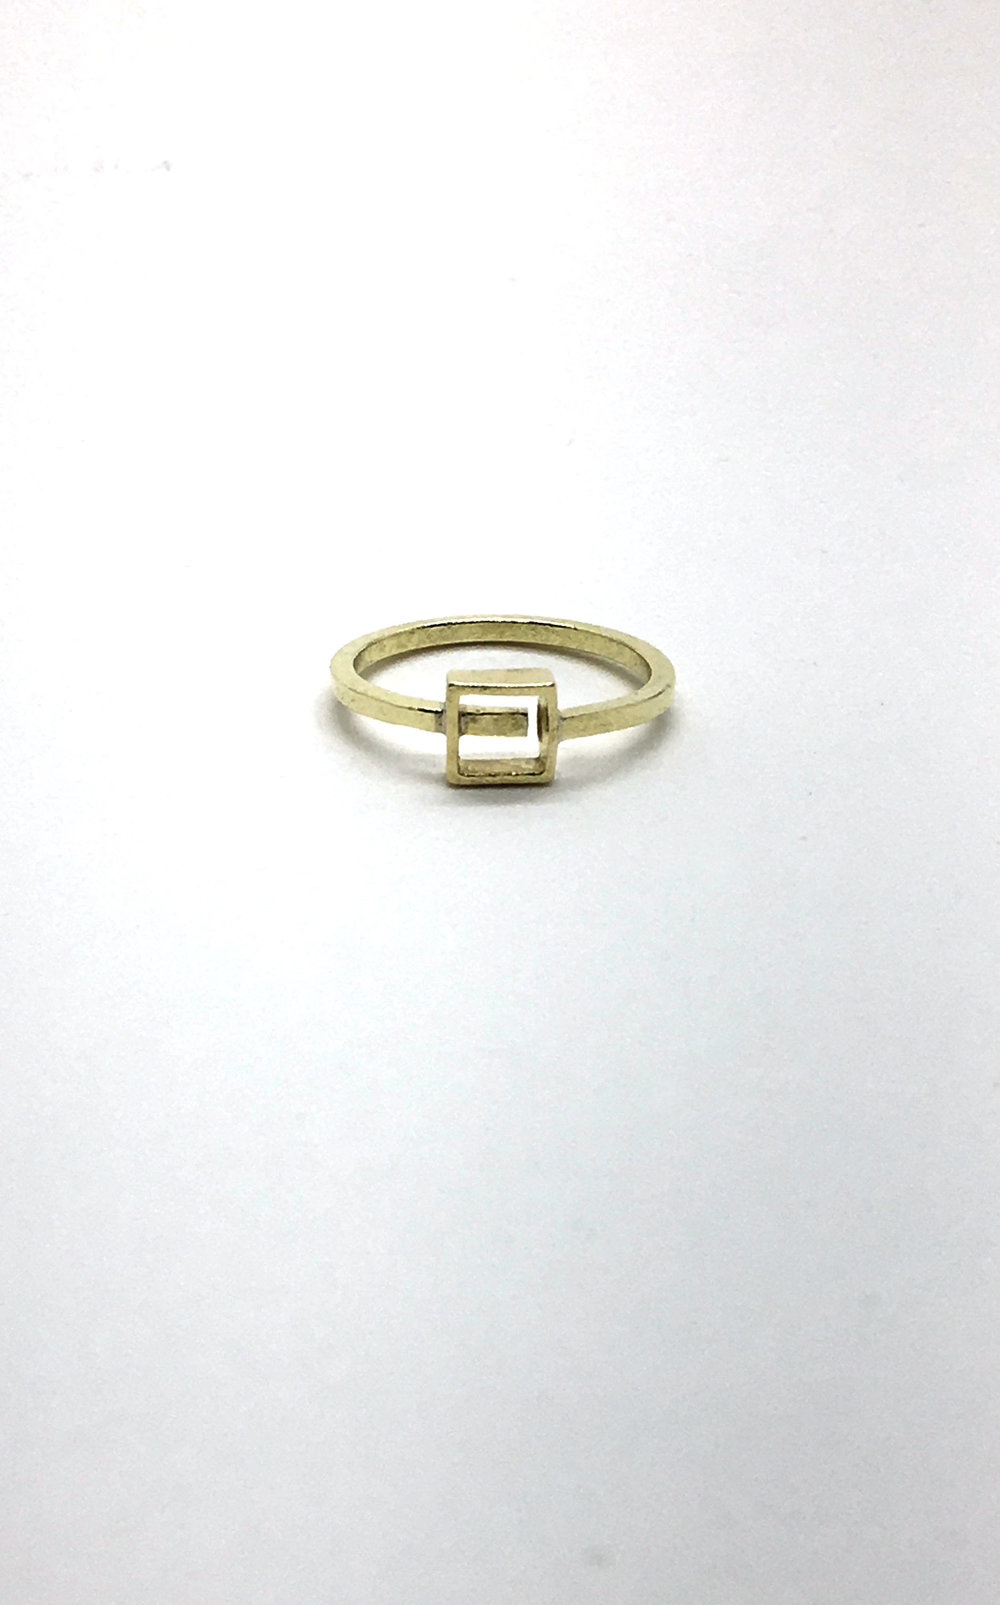 square ring frt top.jpg